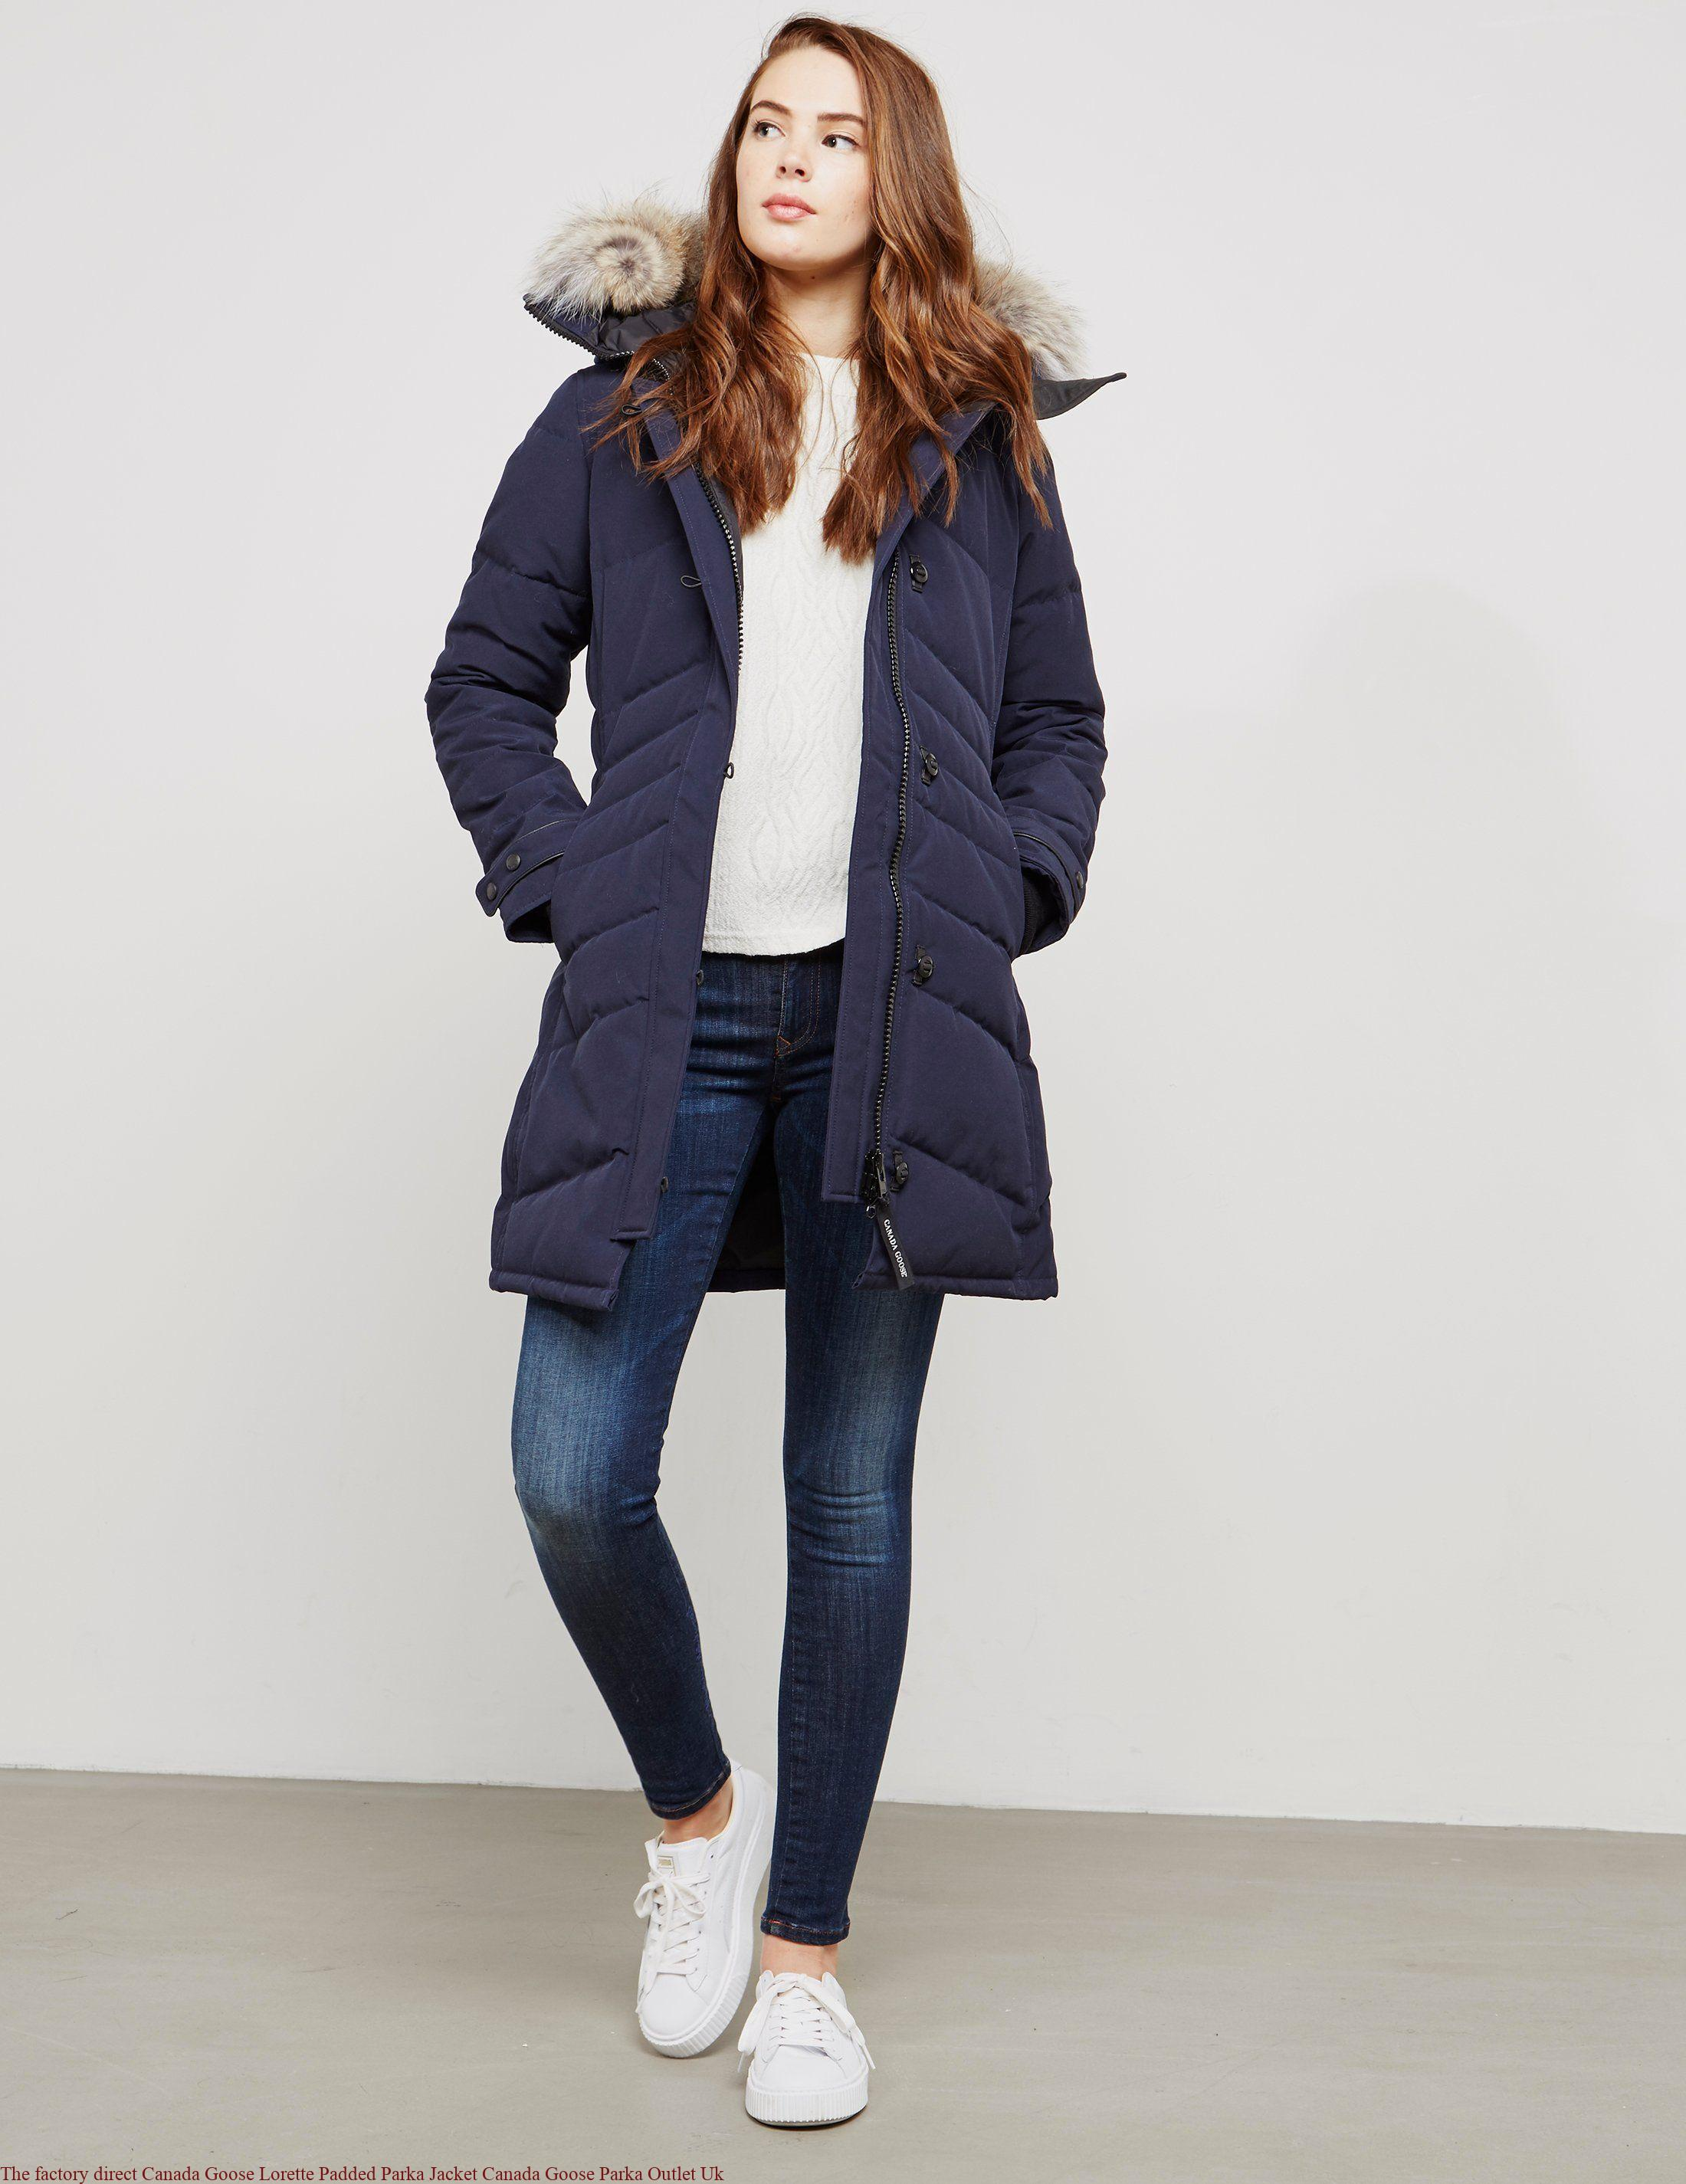 The factory direct Canada Goose Lorette Padded Parka Jacket Canada Goose Parka Outlet Uk